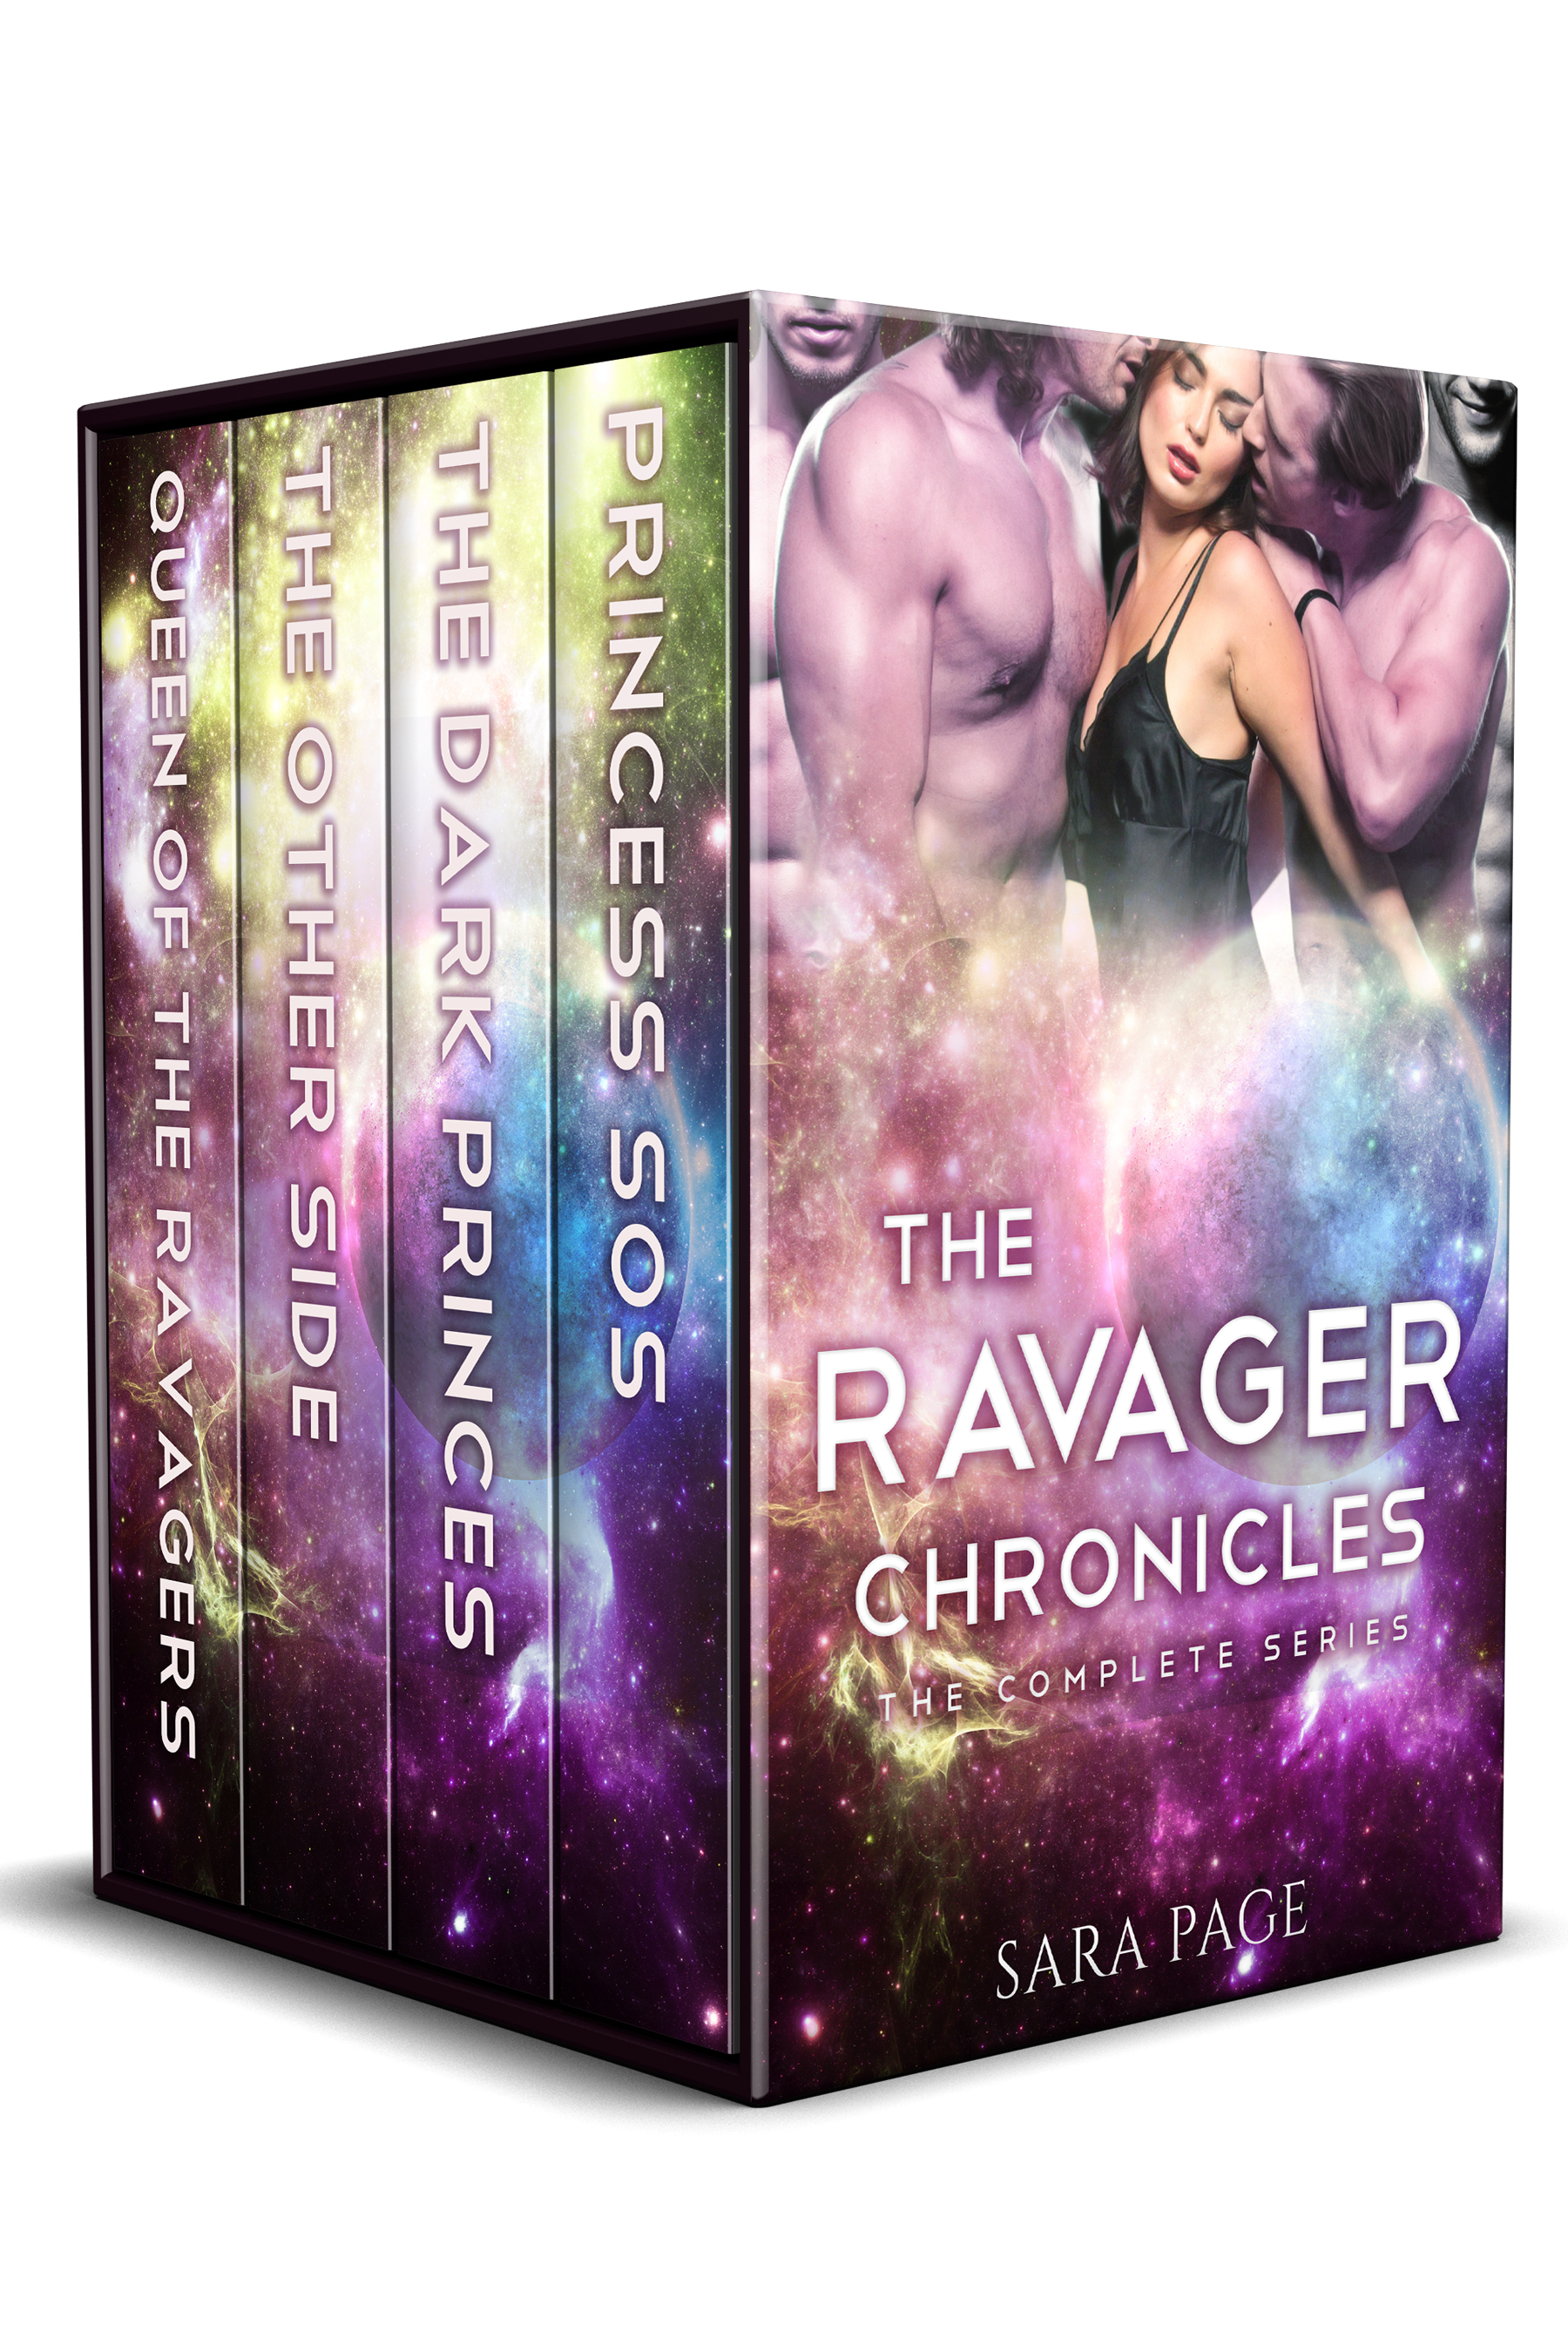 The Ravager Chronicles by Sara Page